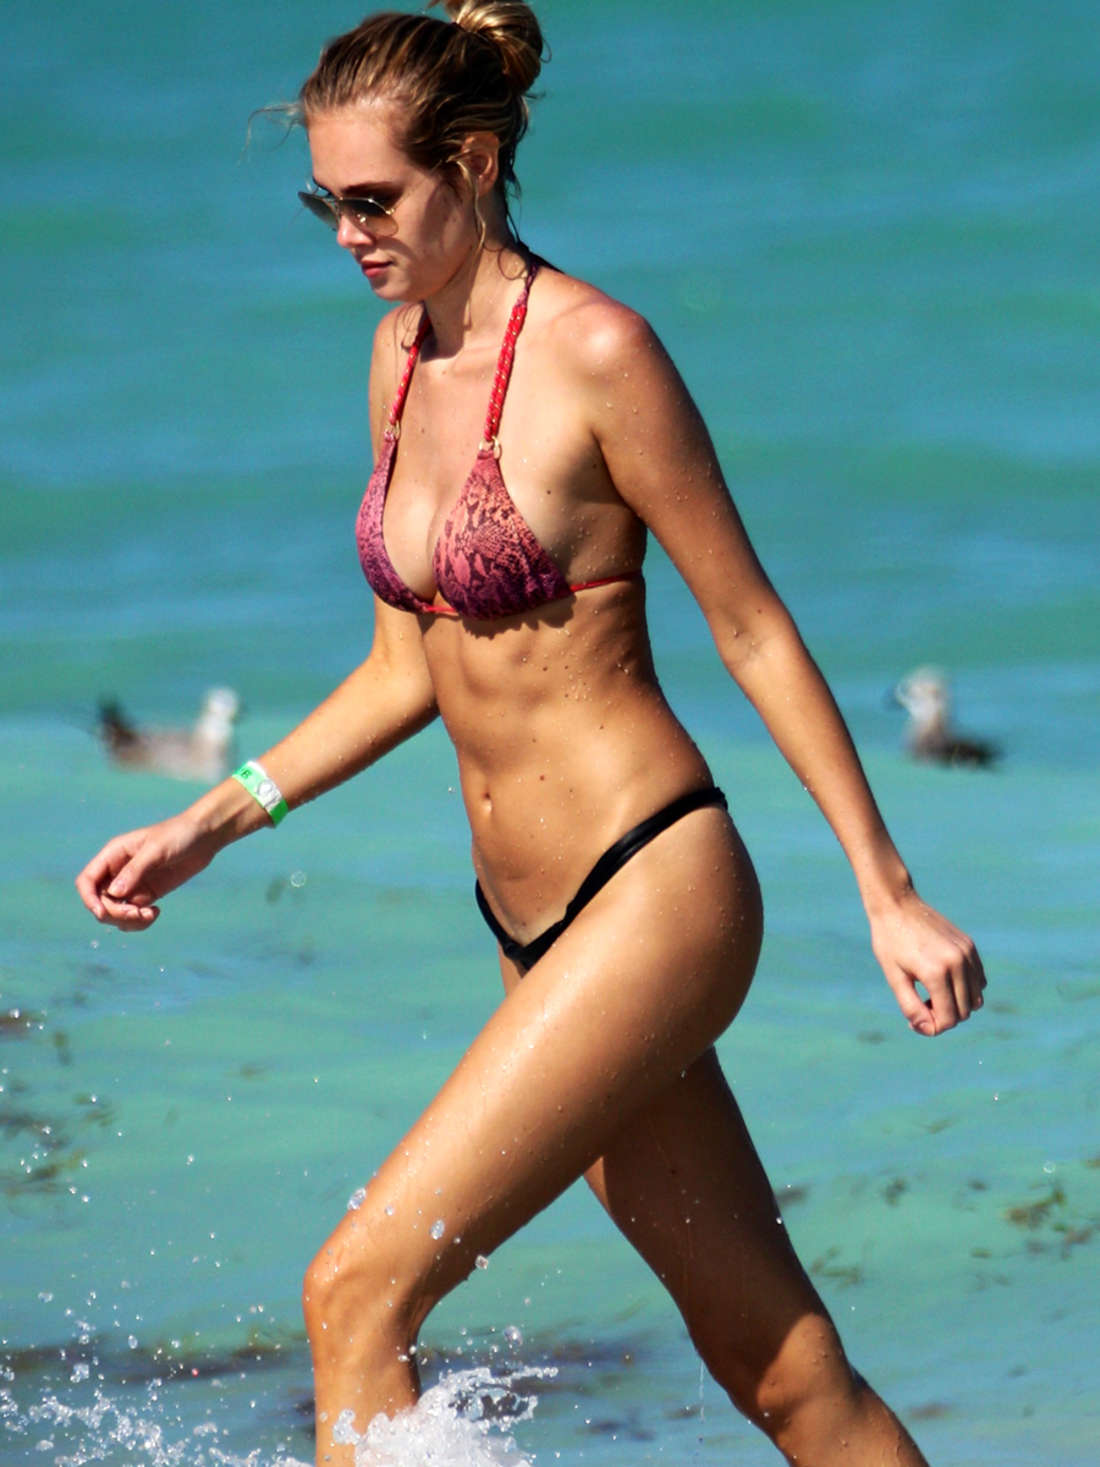 Lays Silva in Bikini at the beach in Miami Pic 5 of 35